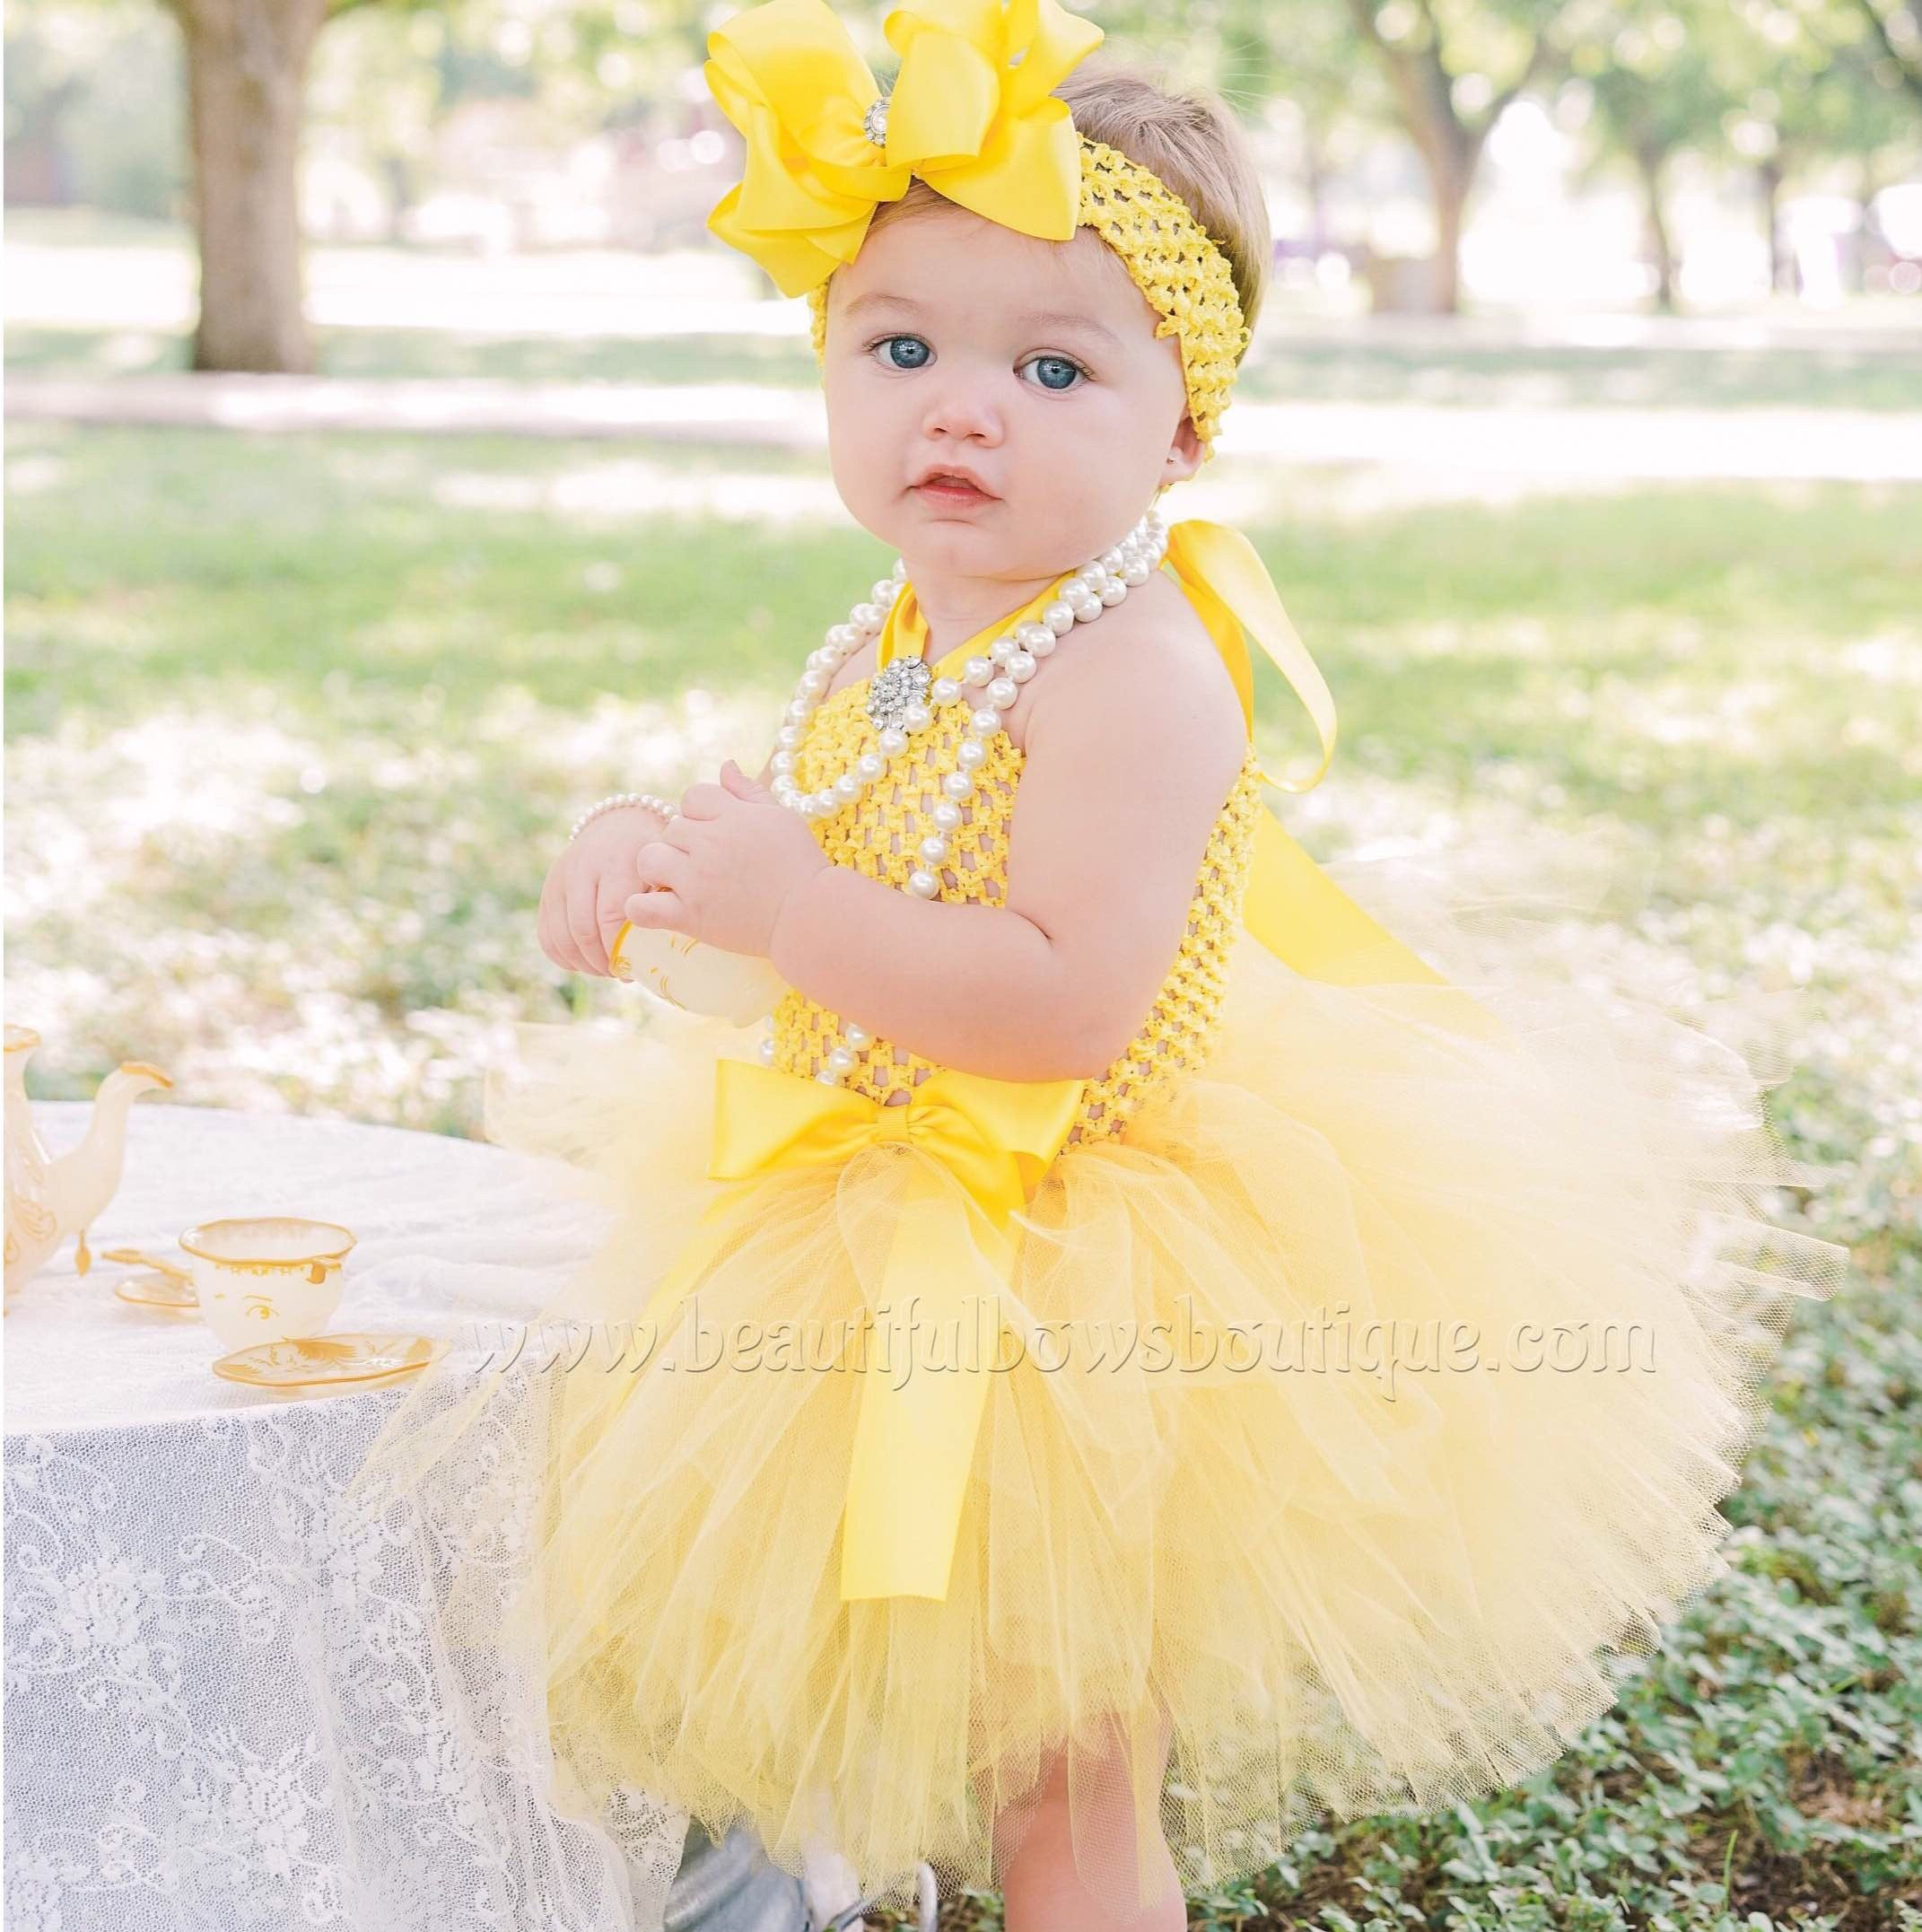 634cb57e146d0 Buy Yellow Princess Tutu Dress,Bright Yellow Baby Tutu Dress,Yellow Tutu  Baby Outfit Online at Beautiful Bows Boutique